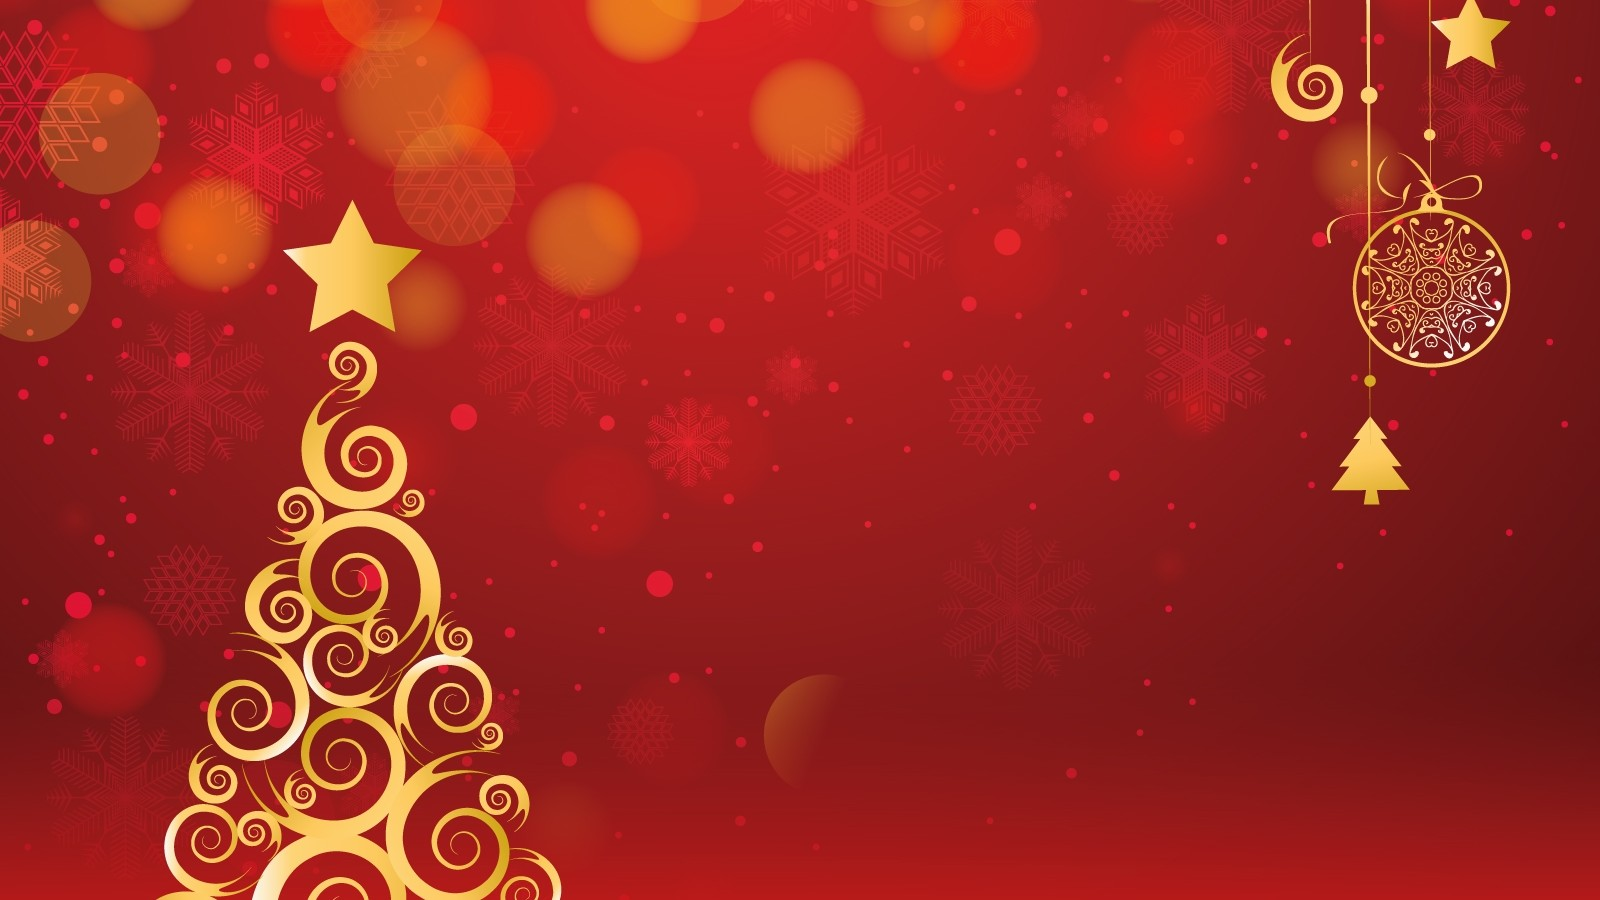 Xmas tree decorations 1600x900 wallpaper for Background decoration images